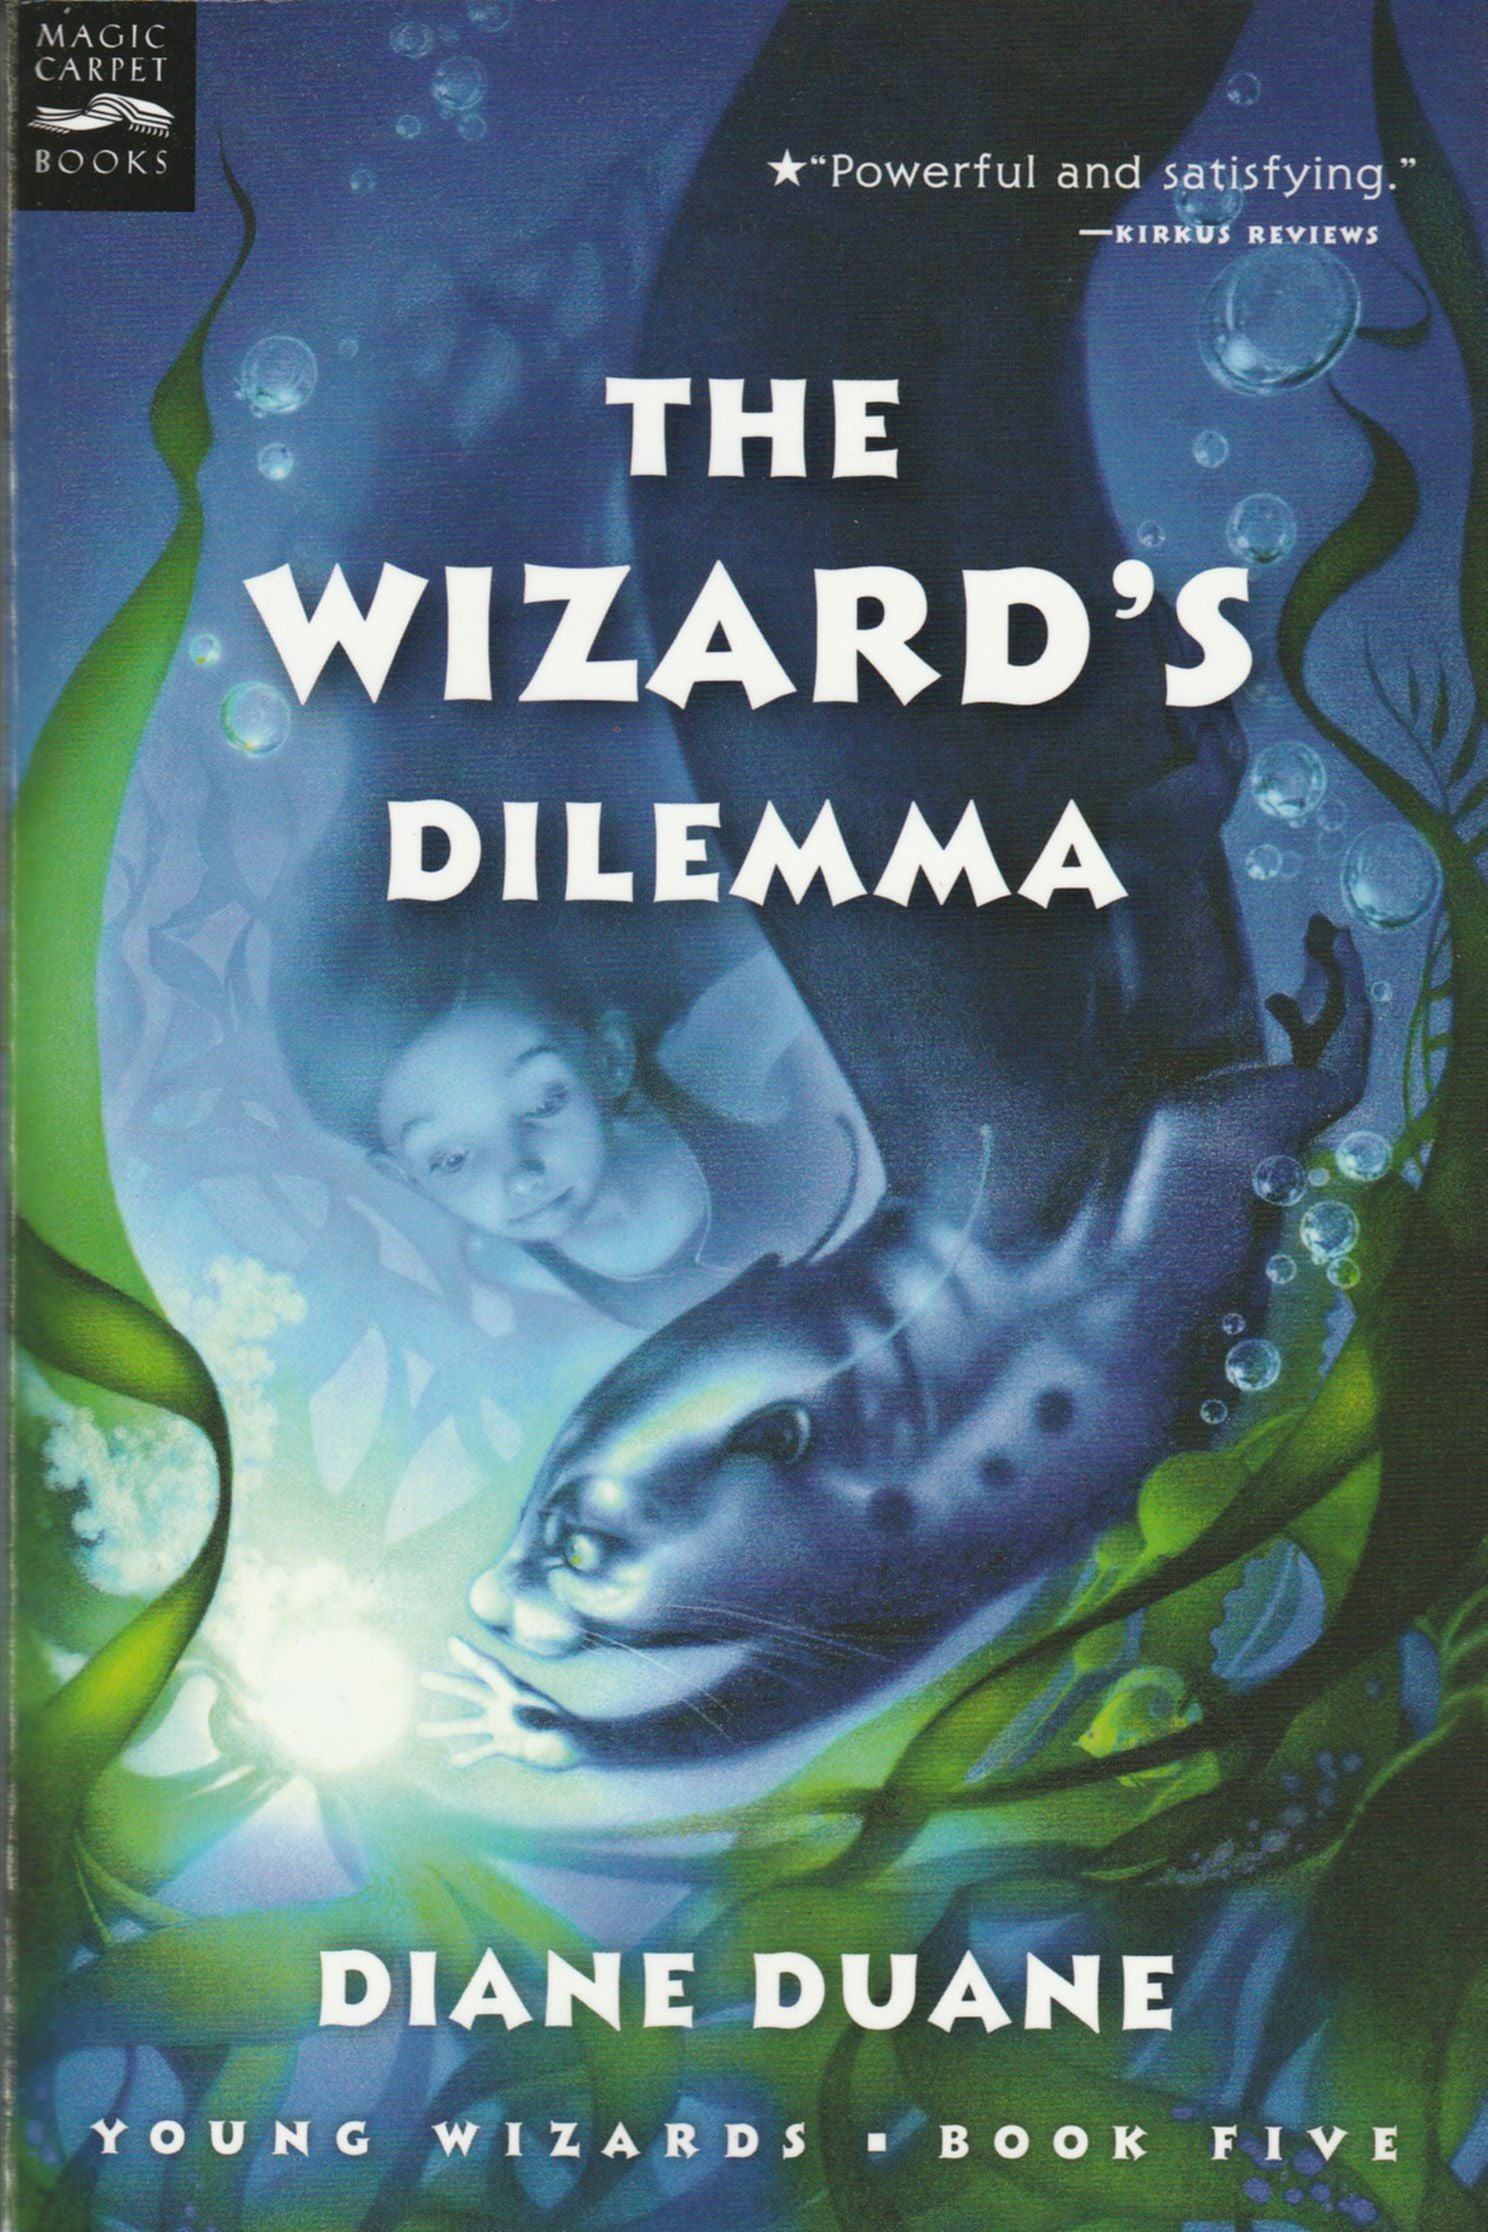 The Wizard's Dilemma, digest format paperback, mint condition, final copies